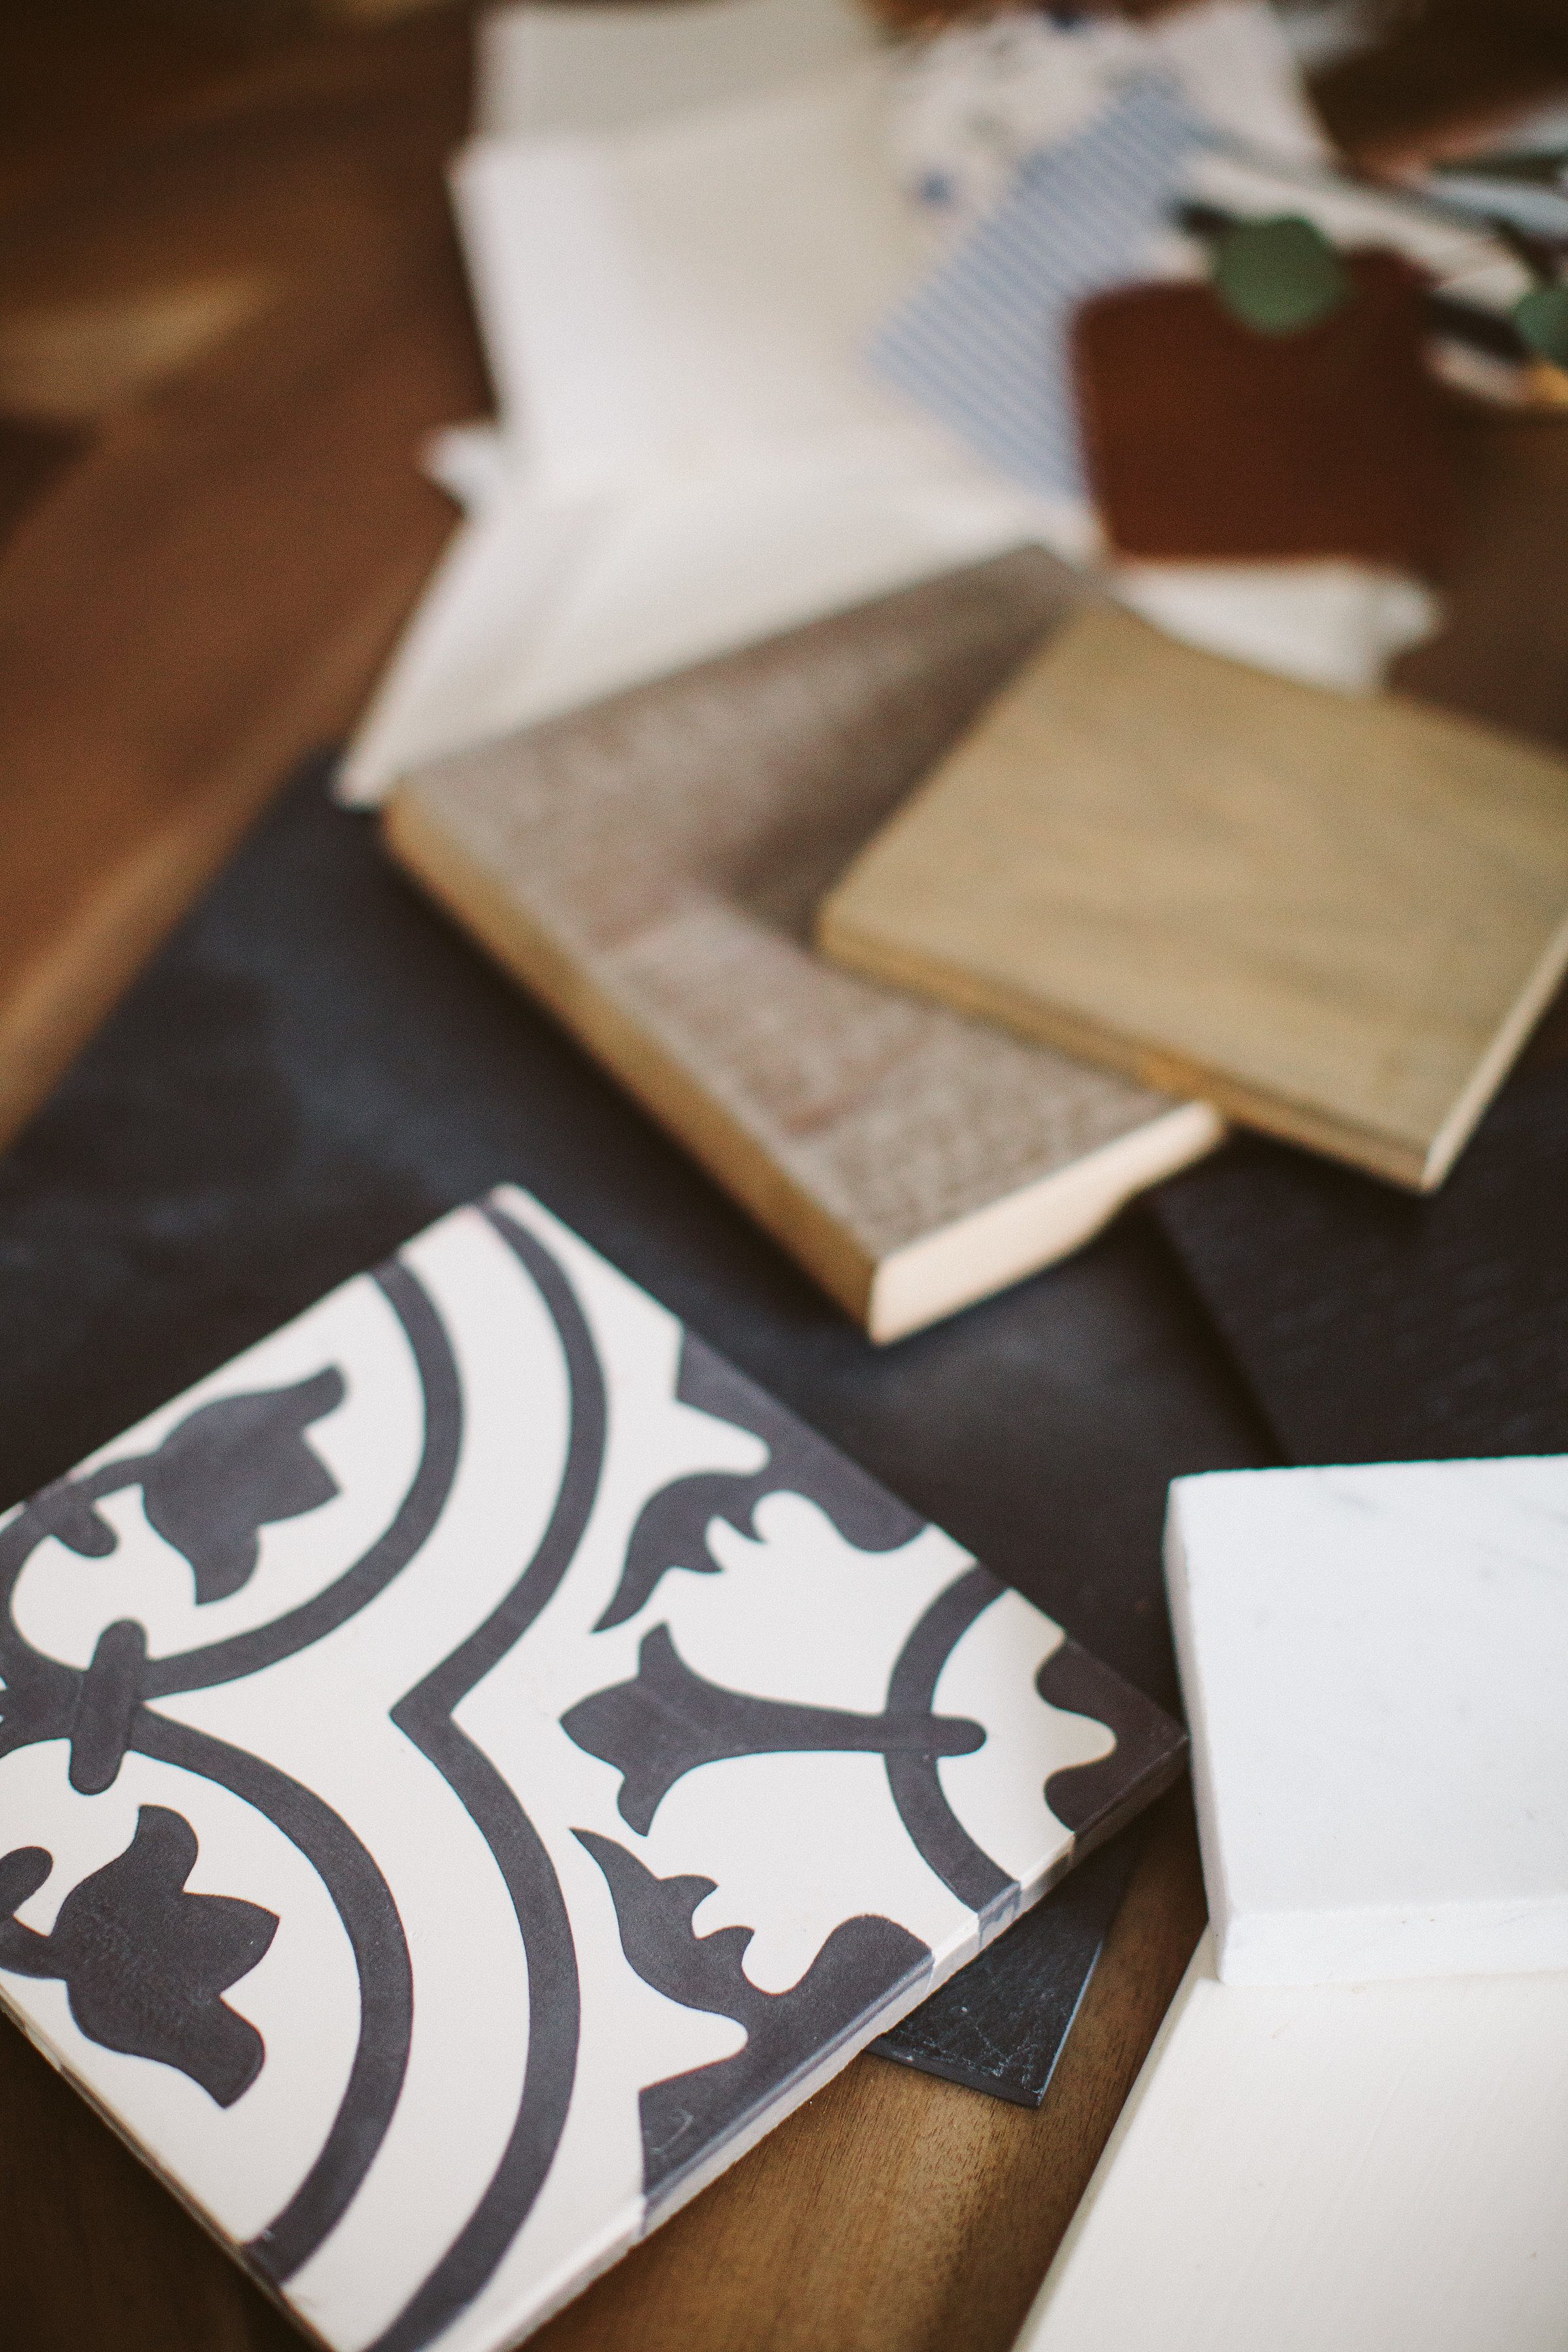 How to hire an interior designer by Teaselwood Design